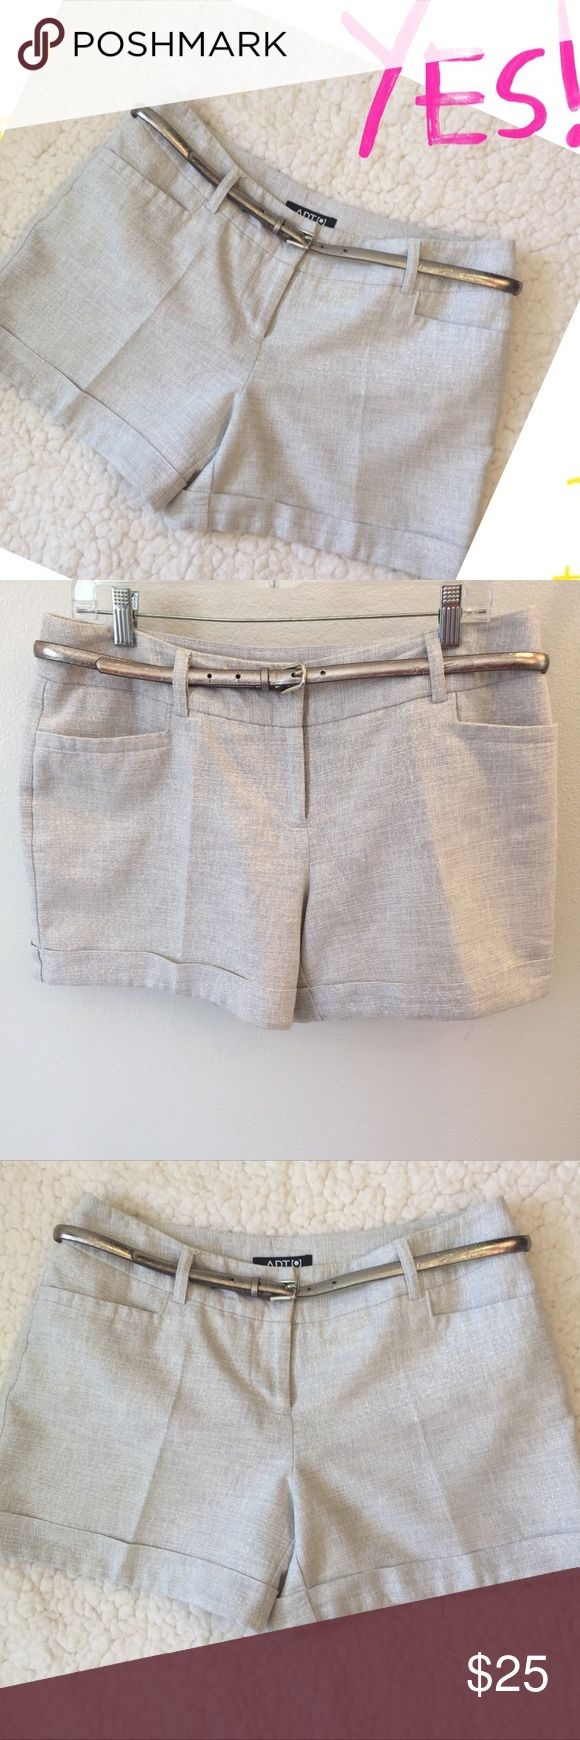 """Sexy,  fashionable linen & cotton blend short. 💋 These are the perfect shorts.  Pair them with a pair of high heels and sexy top and you're off to your date! 👠.  They have a double belt loop (see pic), that allows you to change the belt with a different width.  They have a shiny thread woven in the fabric that gives them a suttle shine.  Tag Size: 12. Measurements: waist 32"""".           Hips 44"""". Length 13 1/2"""". Leg opening 26"""".  No trades please ❣️ No model. ❣️ thank you for stopping by 🤗…"""